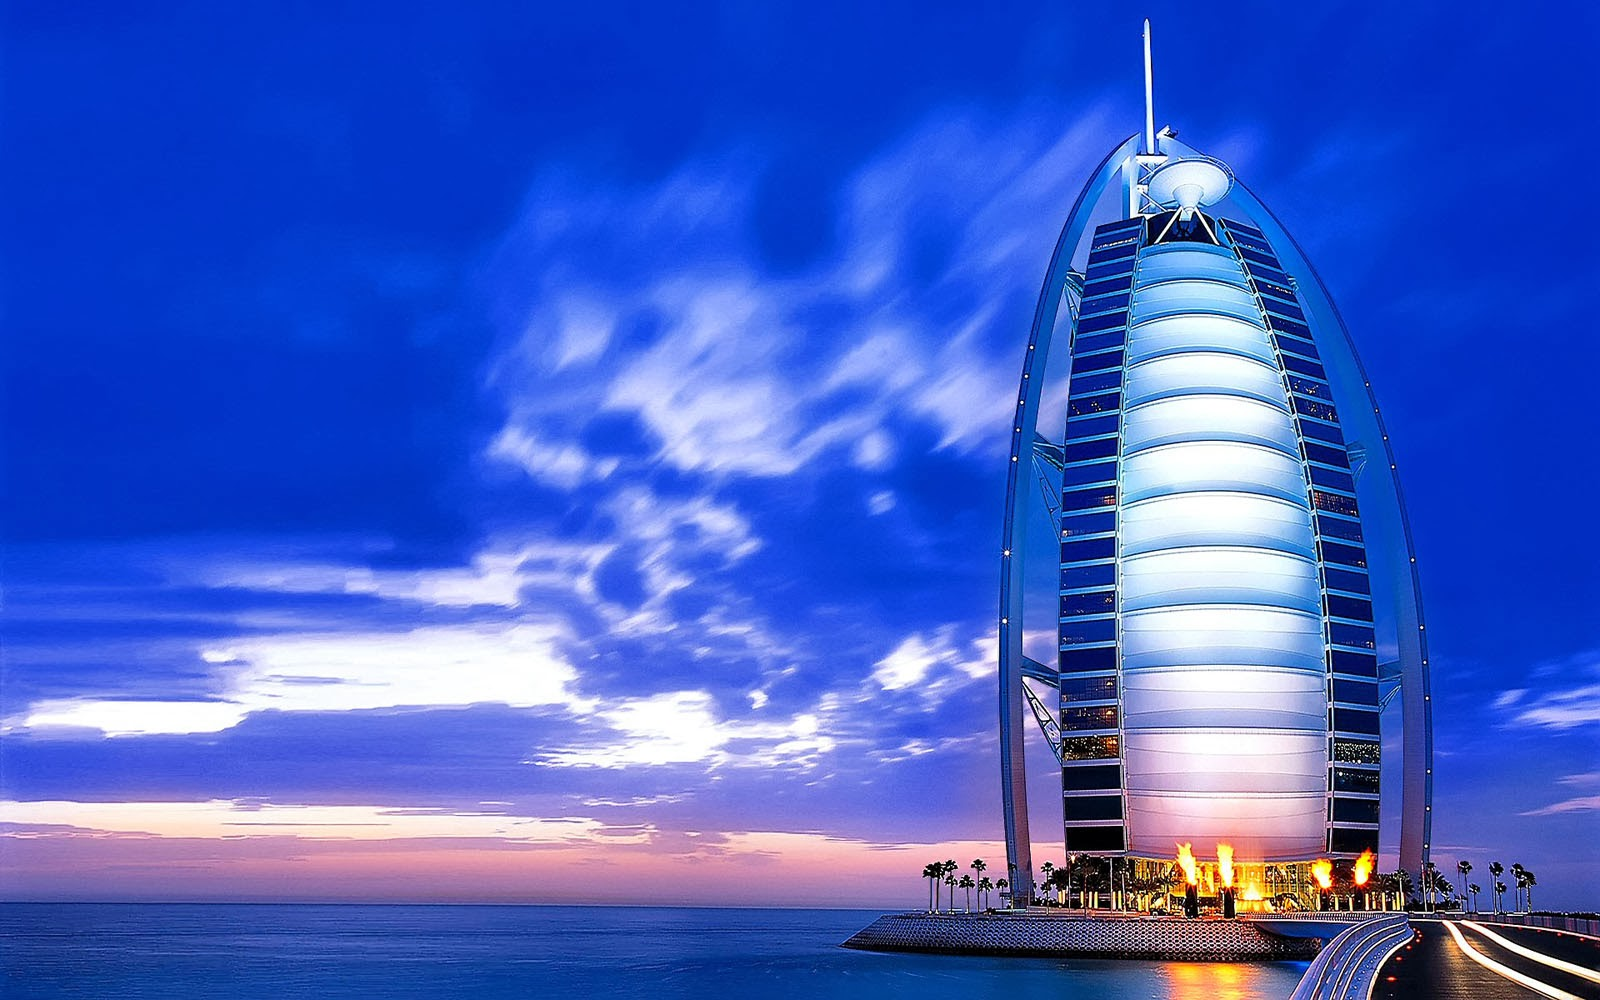 Wallpapers burj al arab hotel wallpapers - Burj al arab wallpaper iphone ...